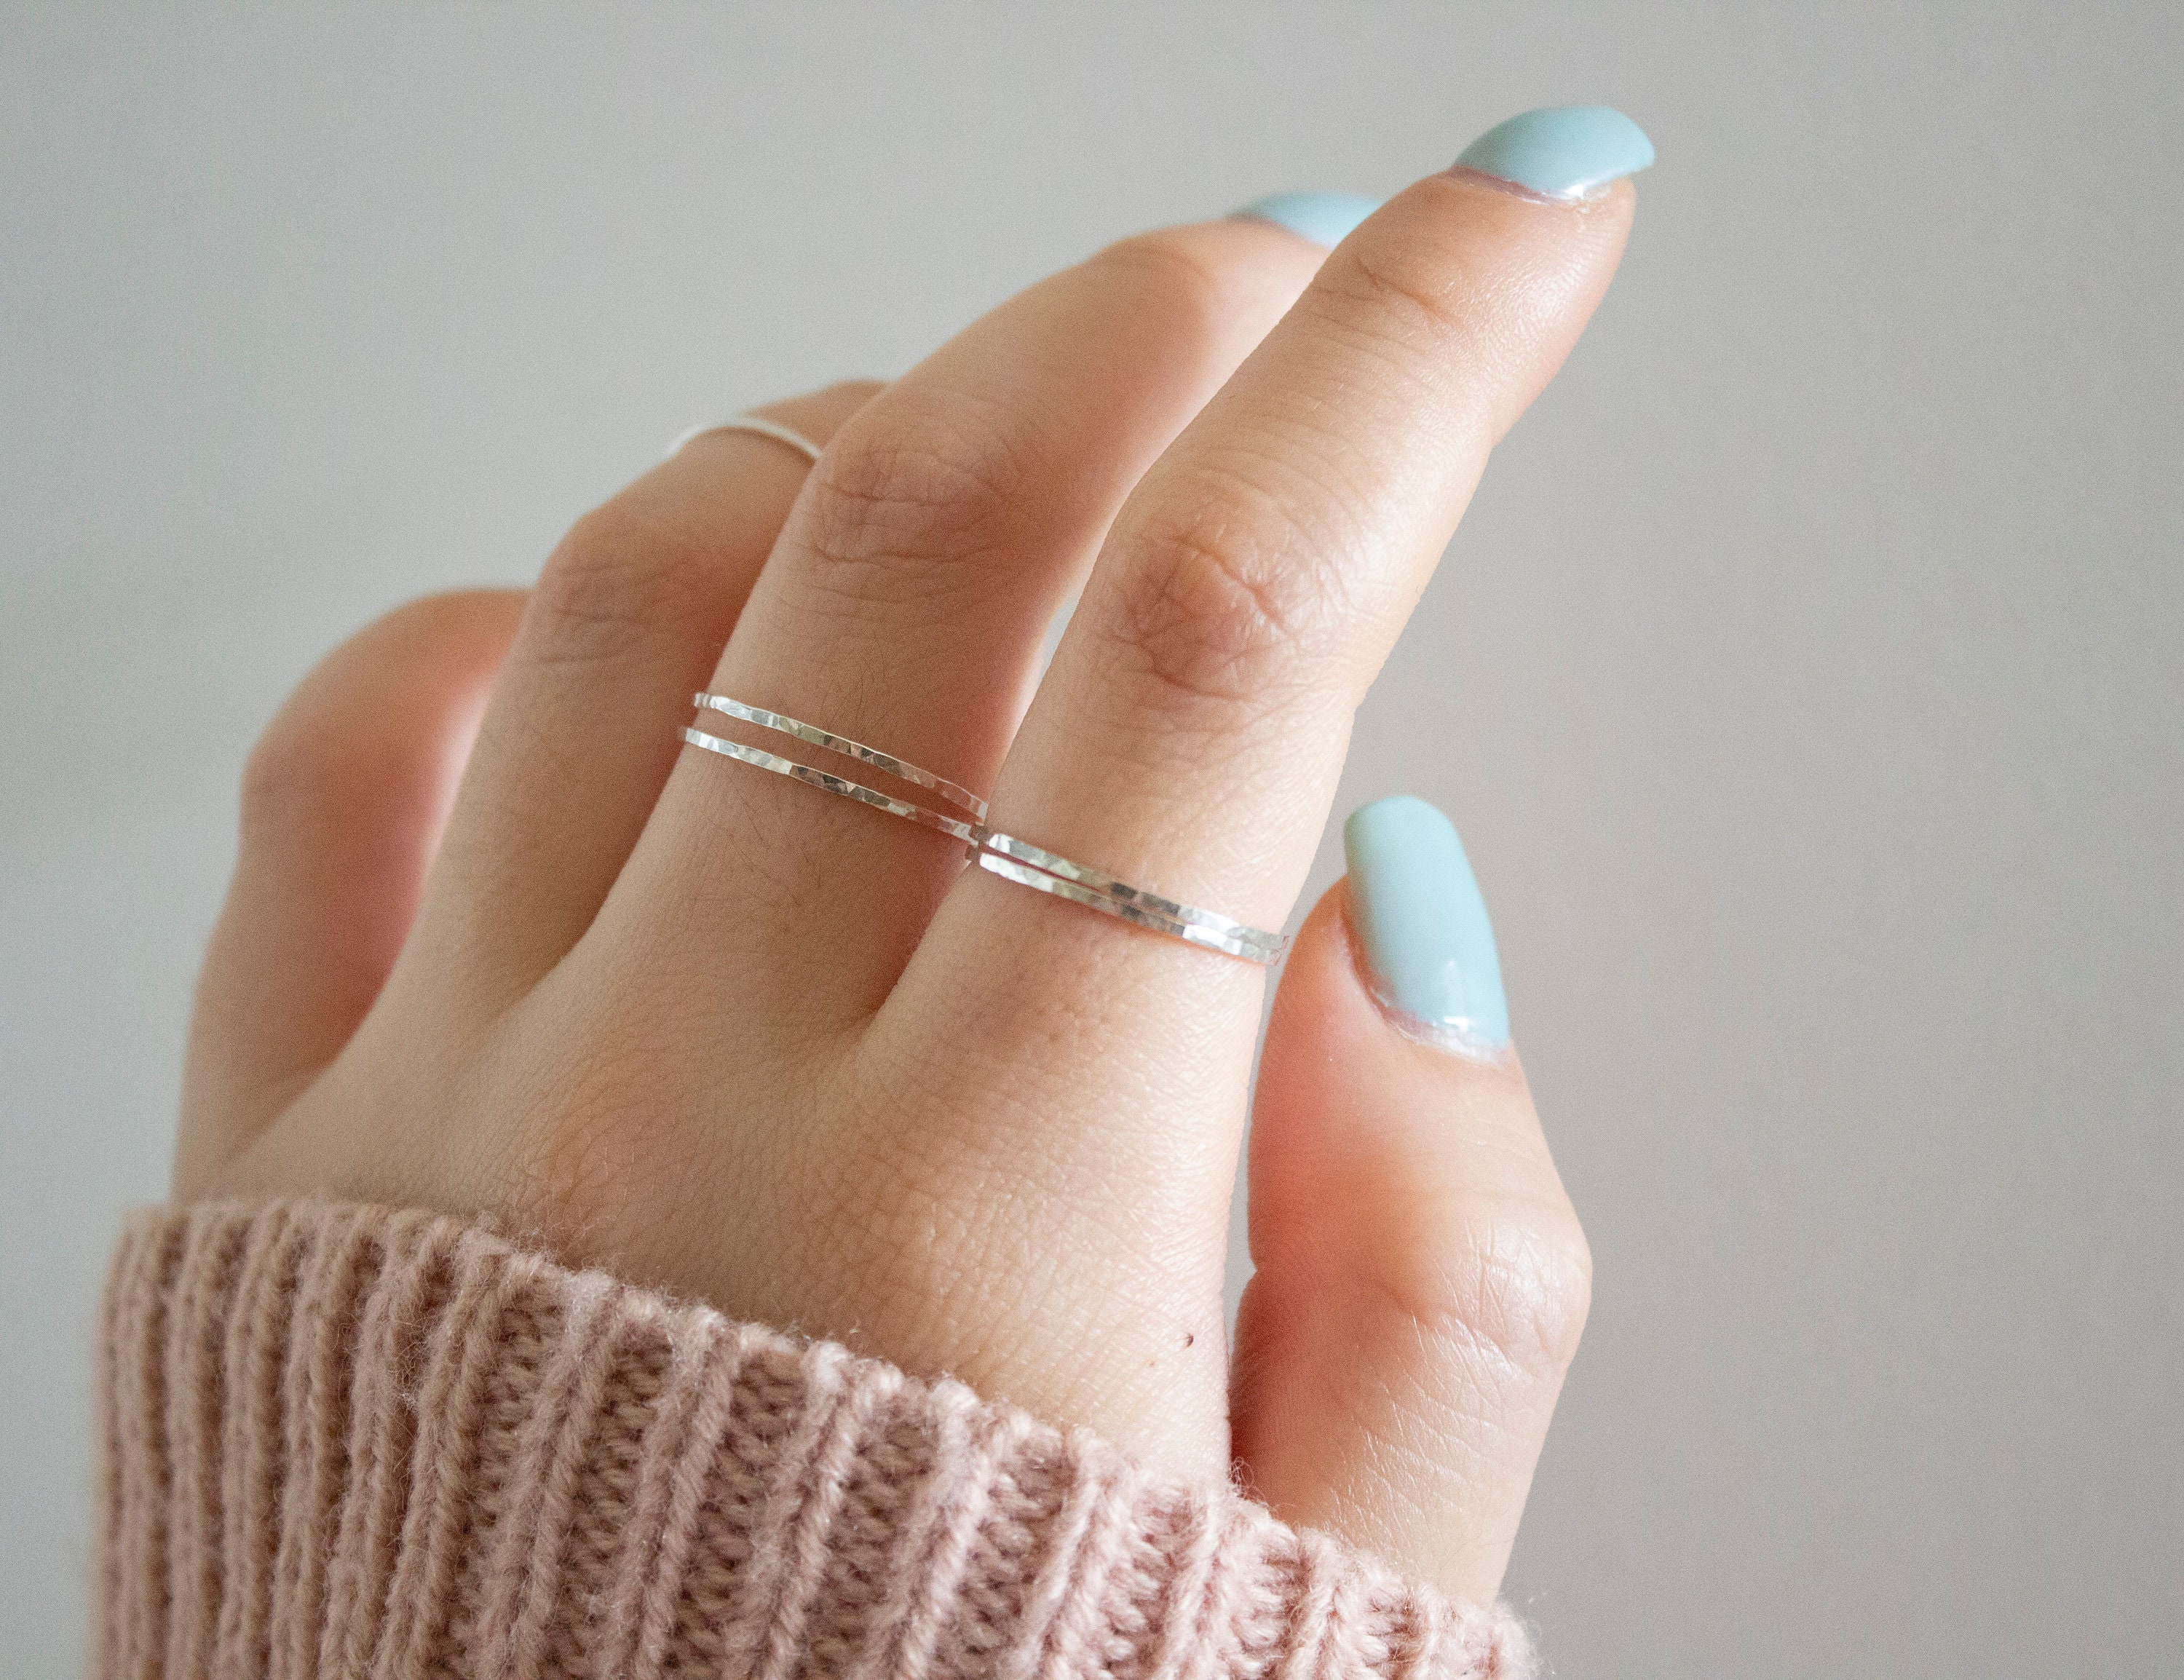 Dainty Ring Chainring Ring Gift Ring for Women Midi Ring Minimalist Ring Statement Ring Loop Ring Knuckle Ring Sterling Silver Ring